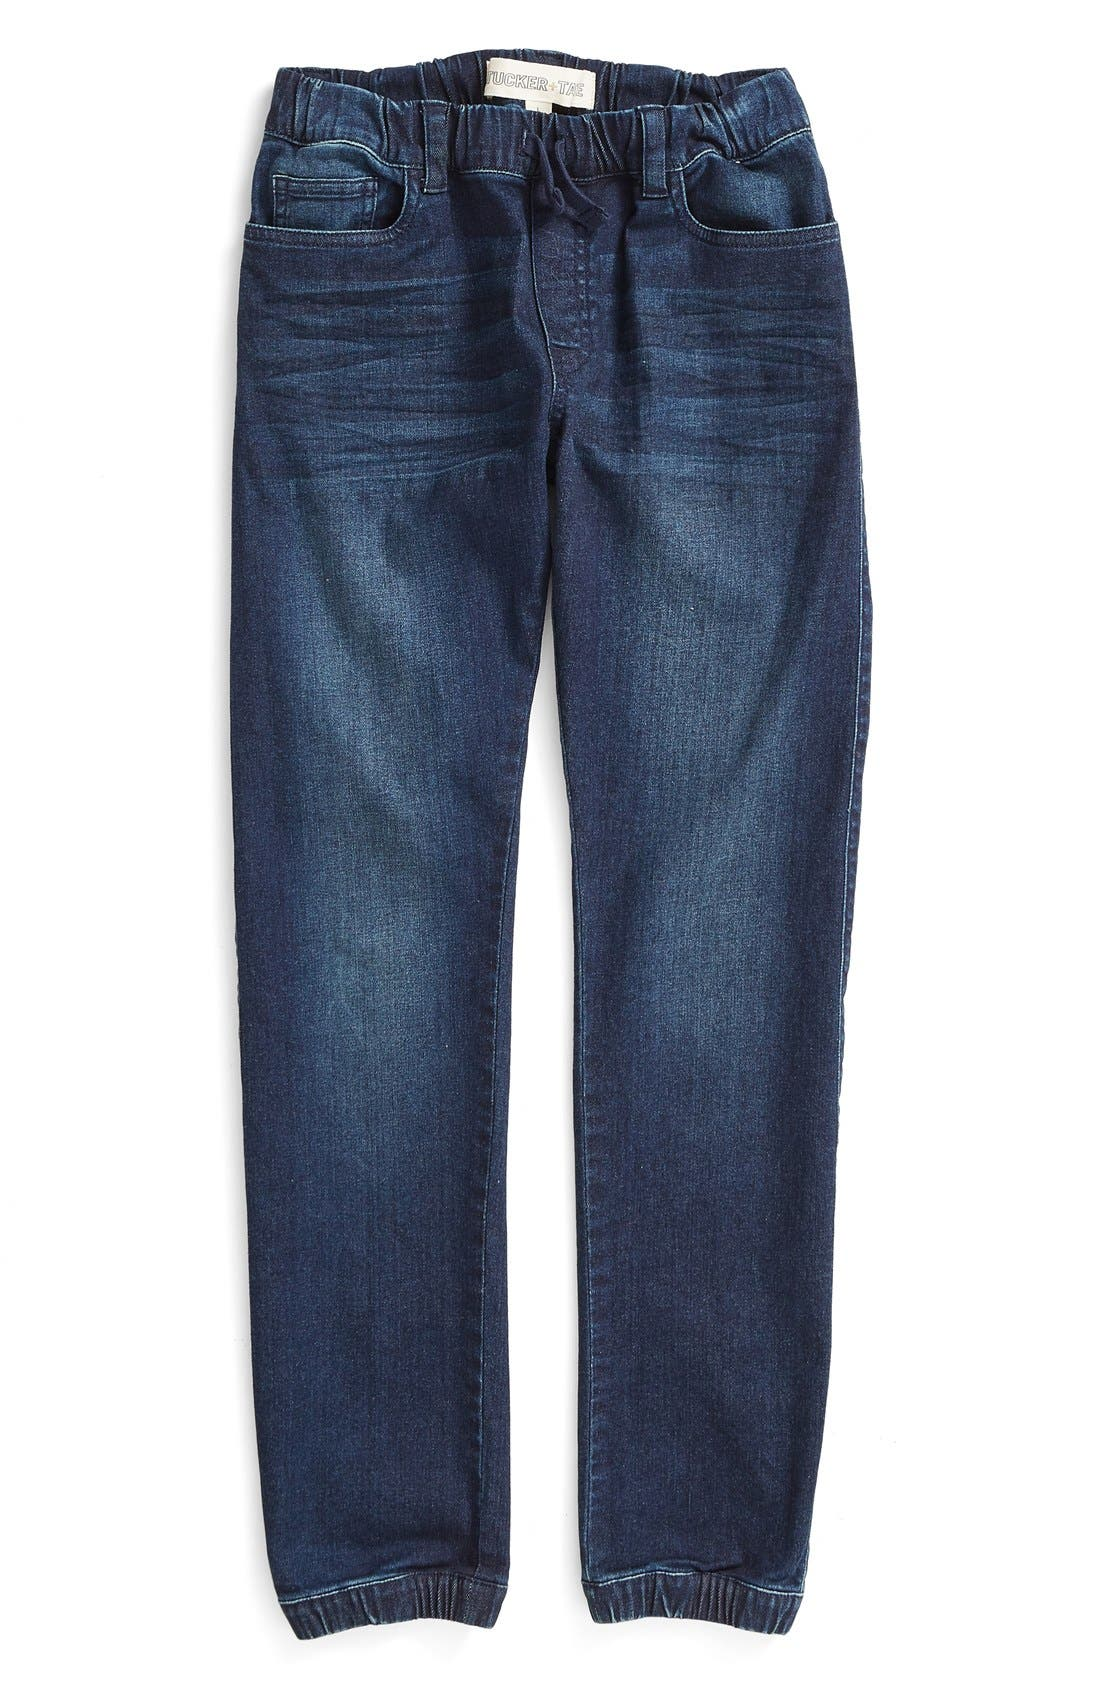 Alternate Image 1 Selected - Tucker + Tate Stretch Denim Jogger Pants (Big Boys)